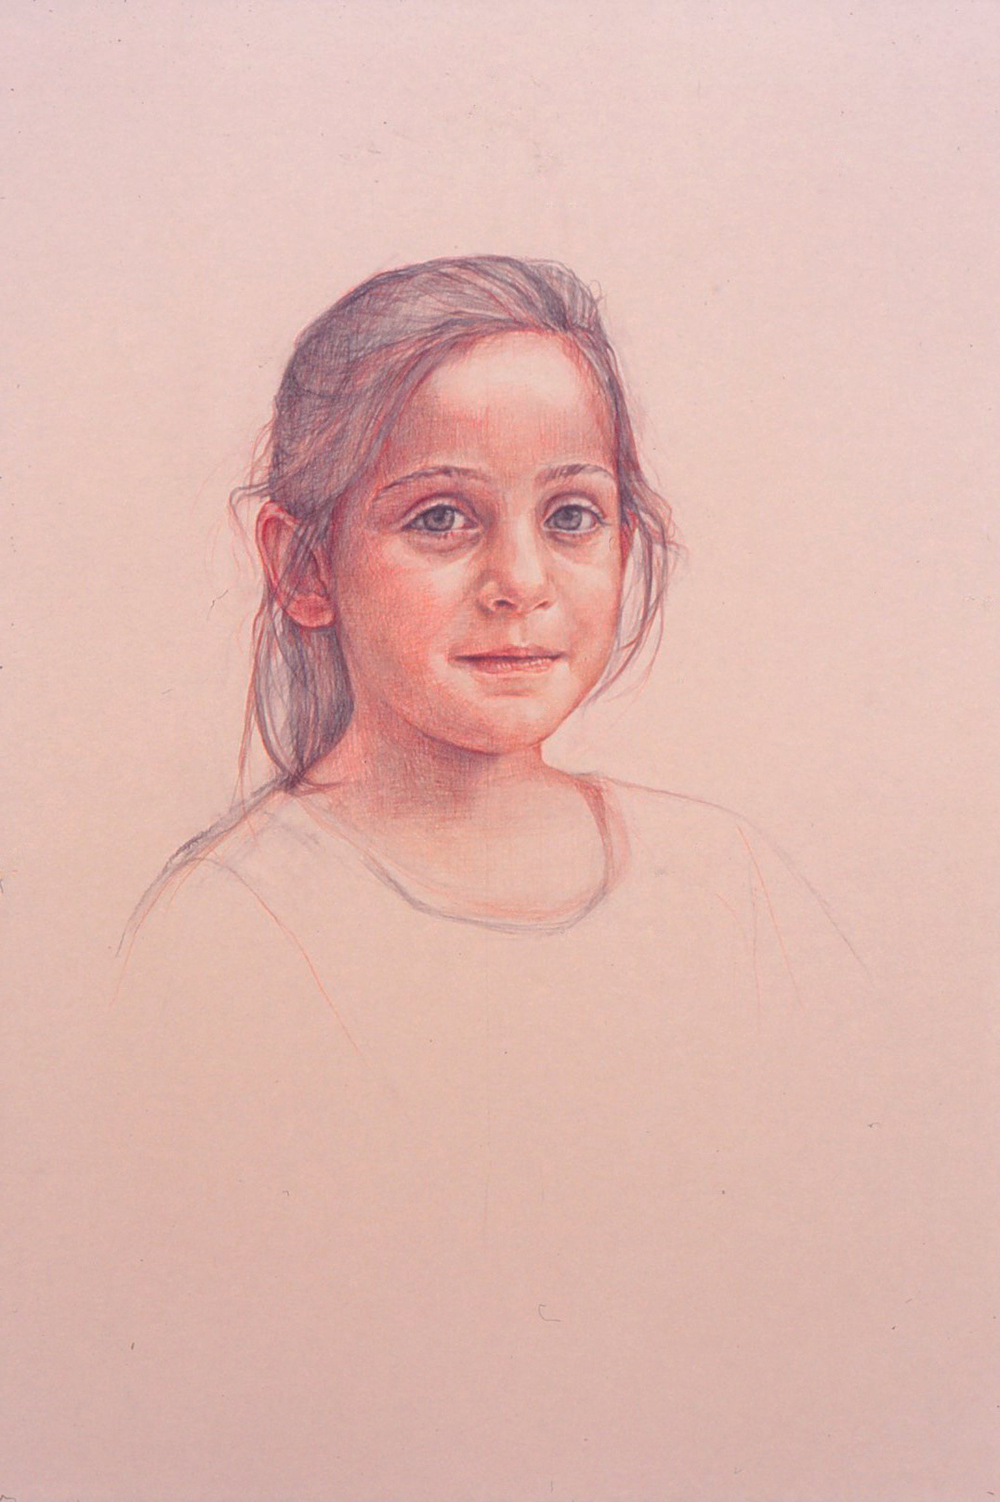 5de(0) - Portrait of Irene - color pencil, charcoal on toned paper, 30x18 in. 1992.jpg